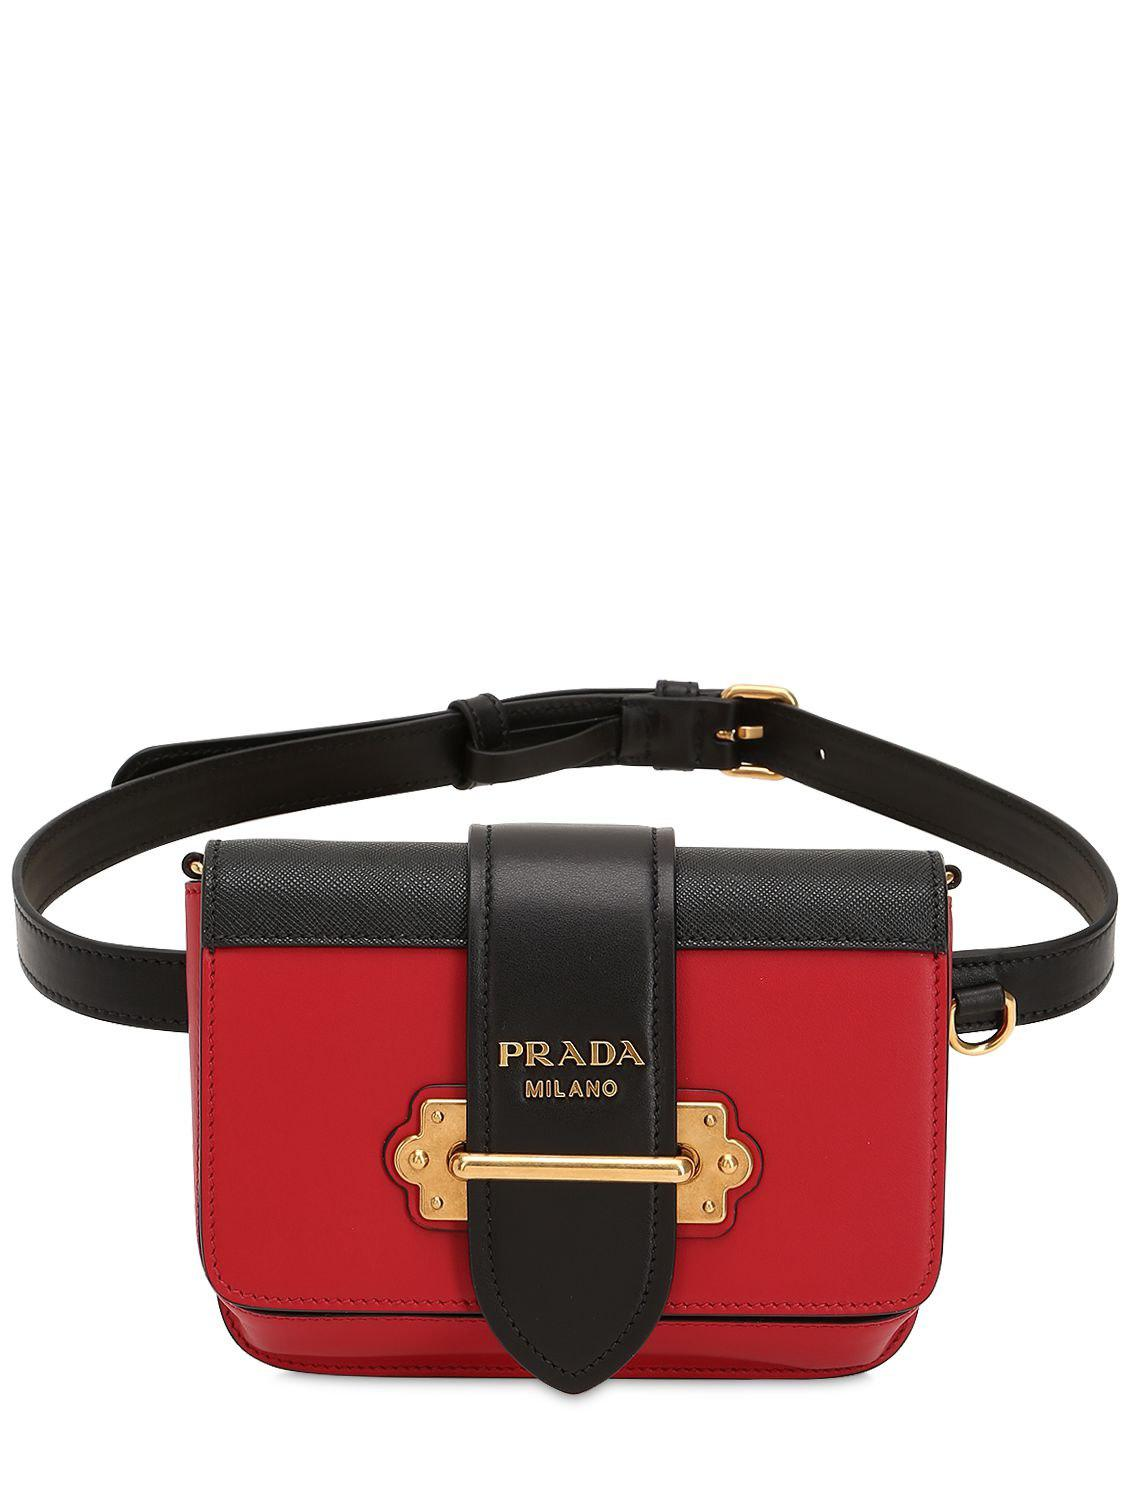 ea85a534bf5686 Lyst - Prada Cahier Saffiano Leather Belt Pack in Red